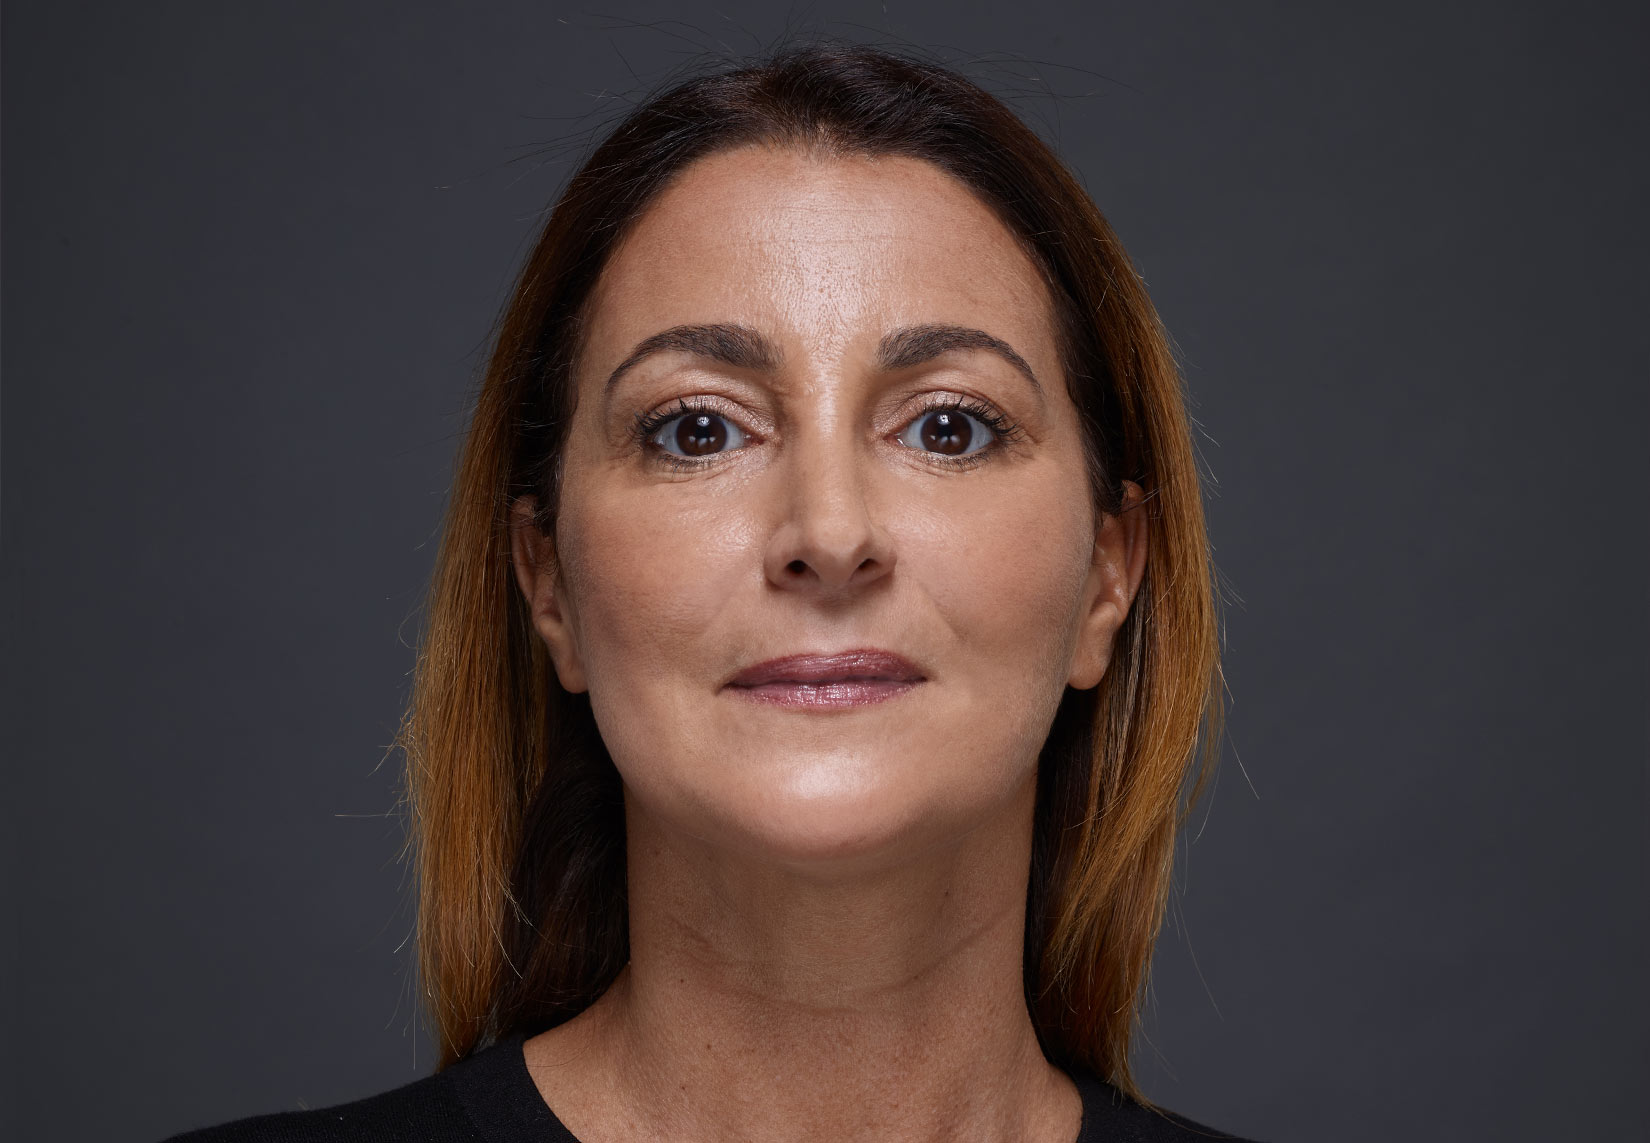 Woman face with brown eyes and brown hairs | Fillmed